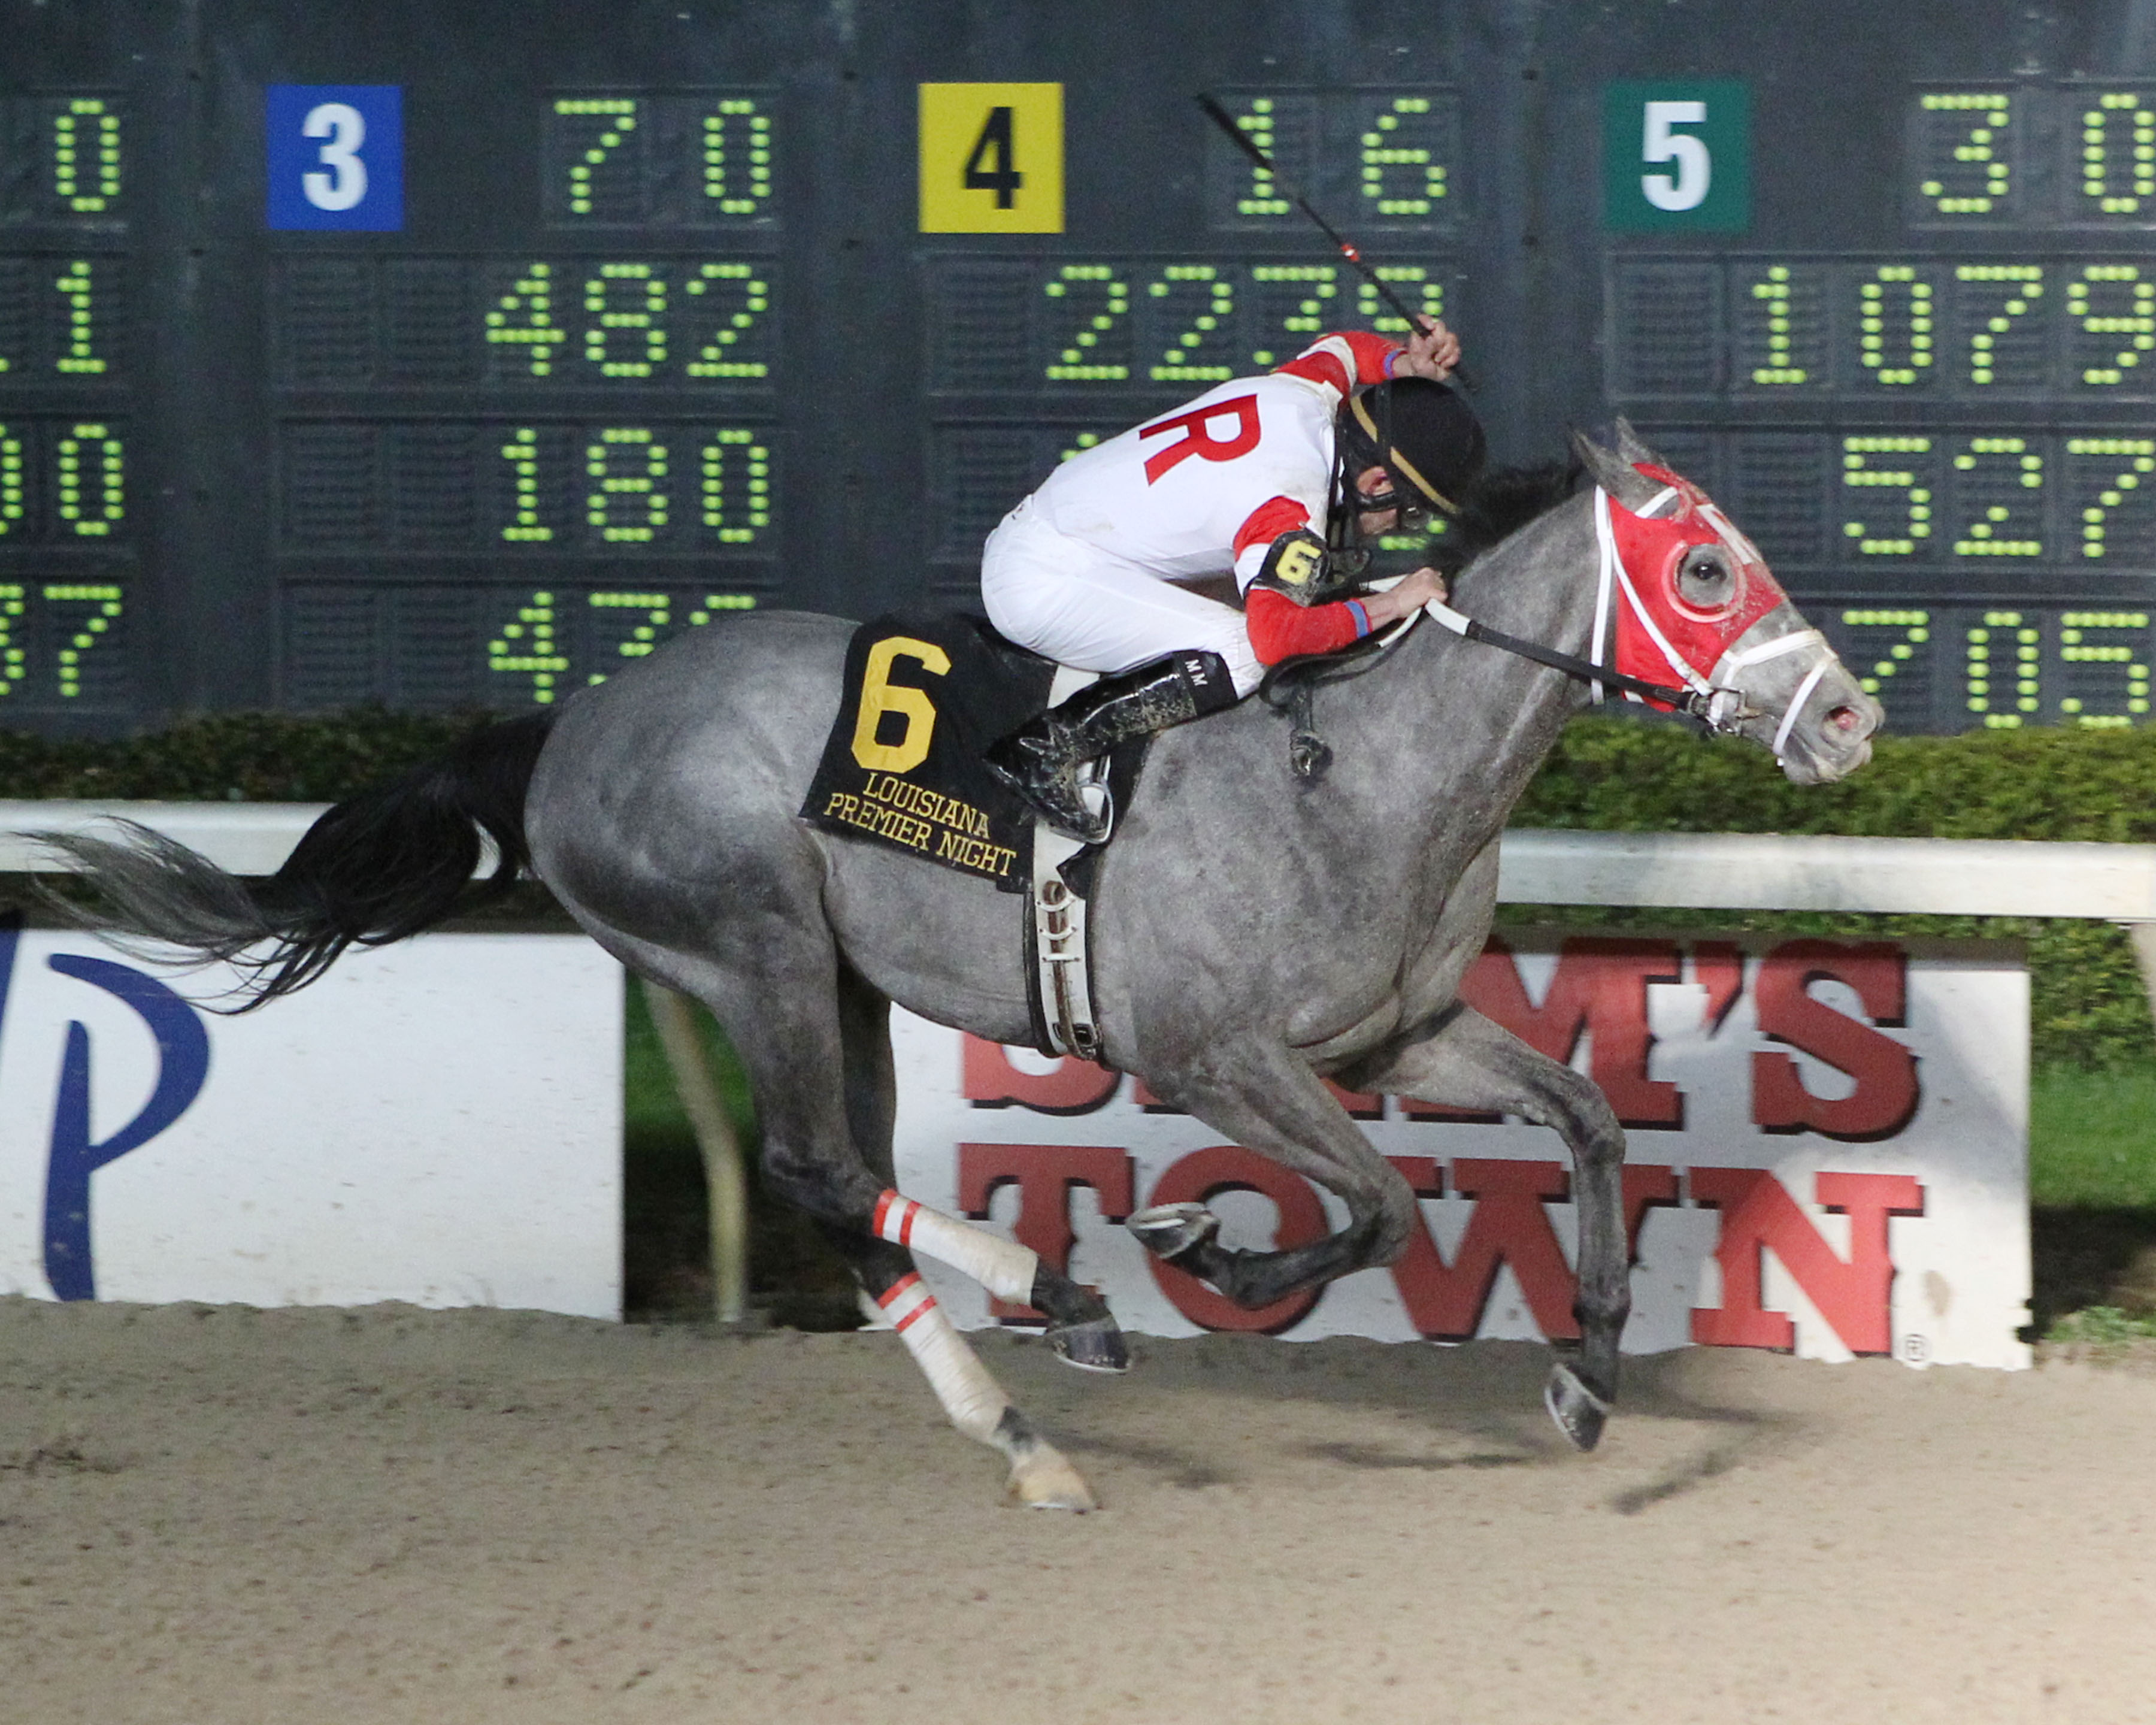 ONE KINGS MAN - The 12th Running of the LA Bred Premier Night Championship - 02-07-15 - R10 - DED fin1